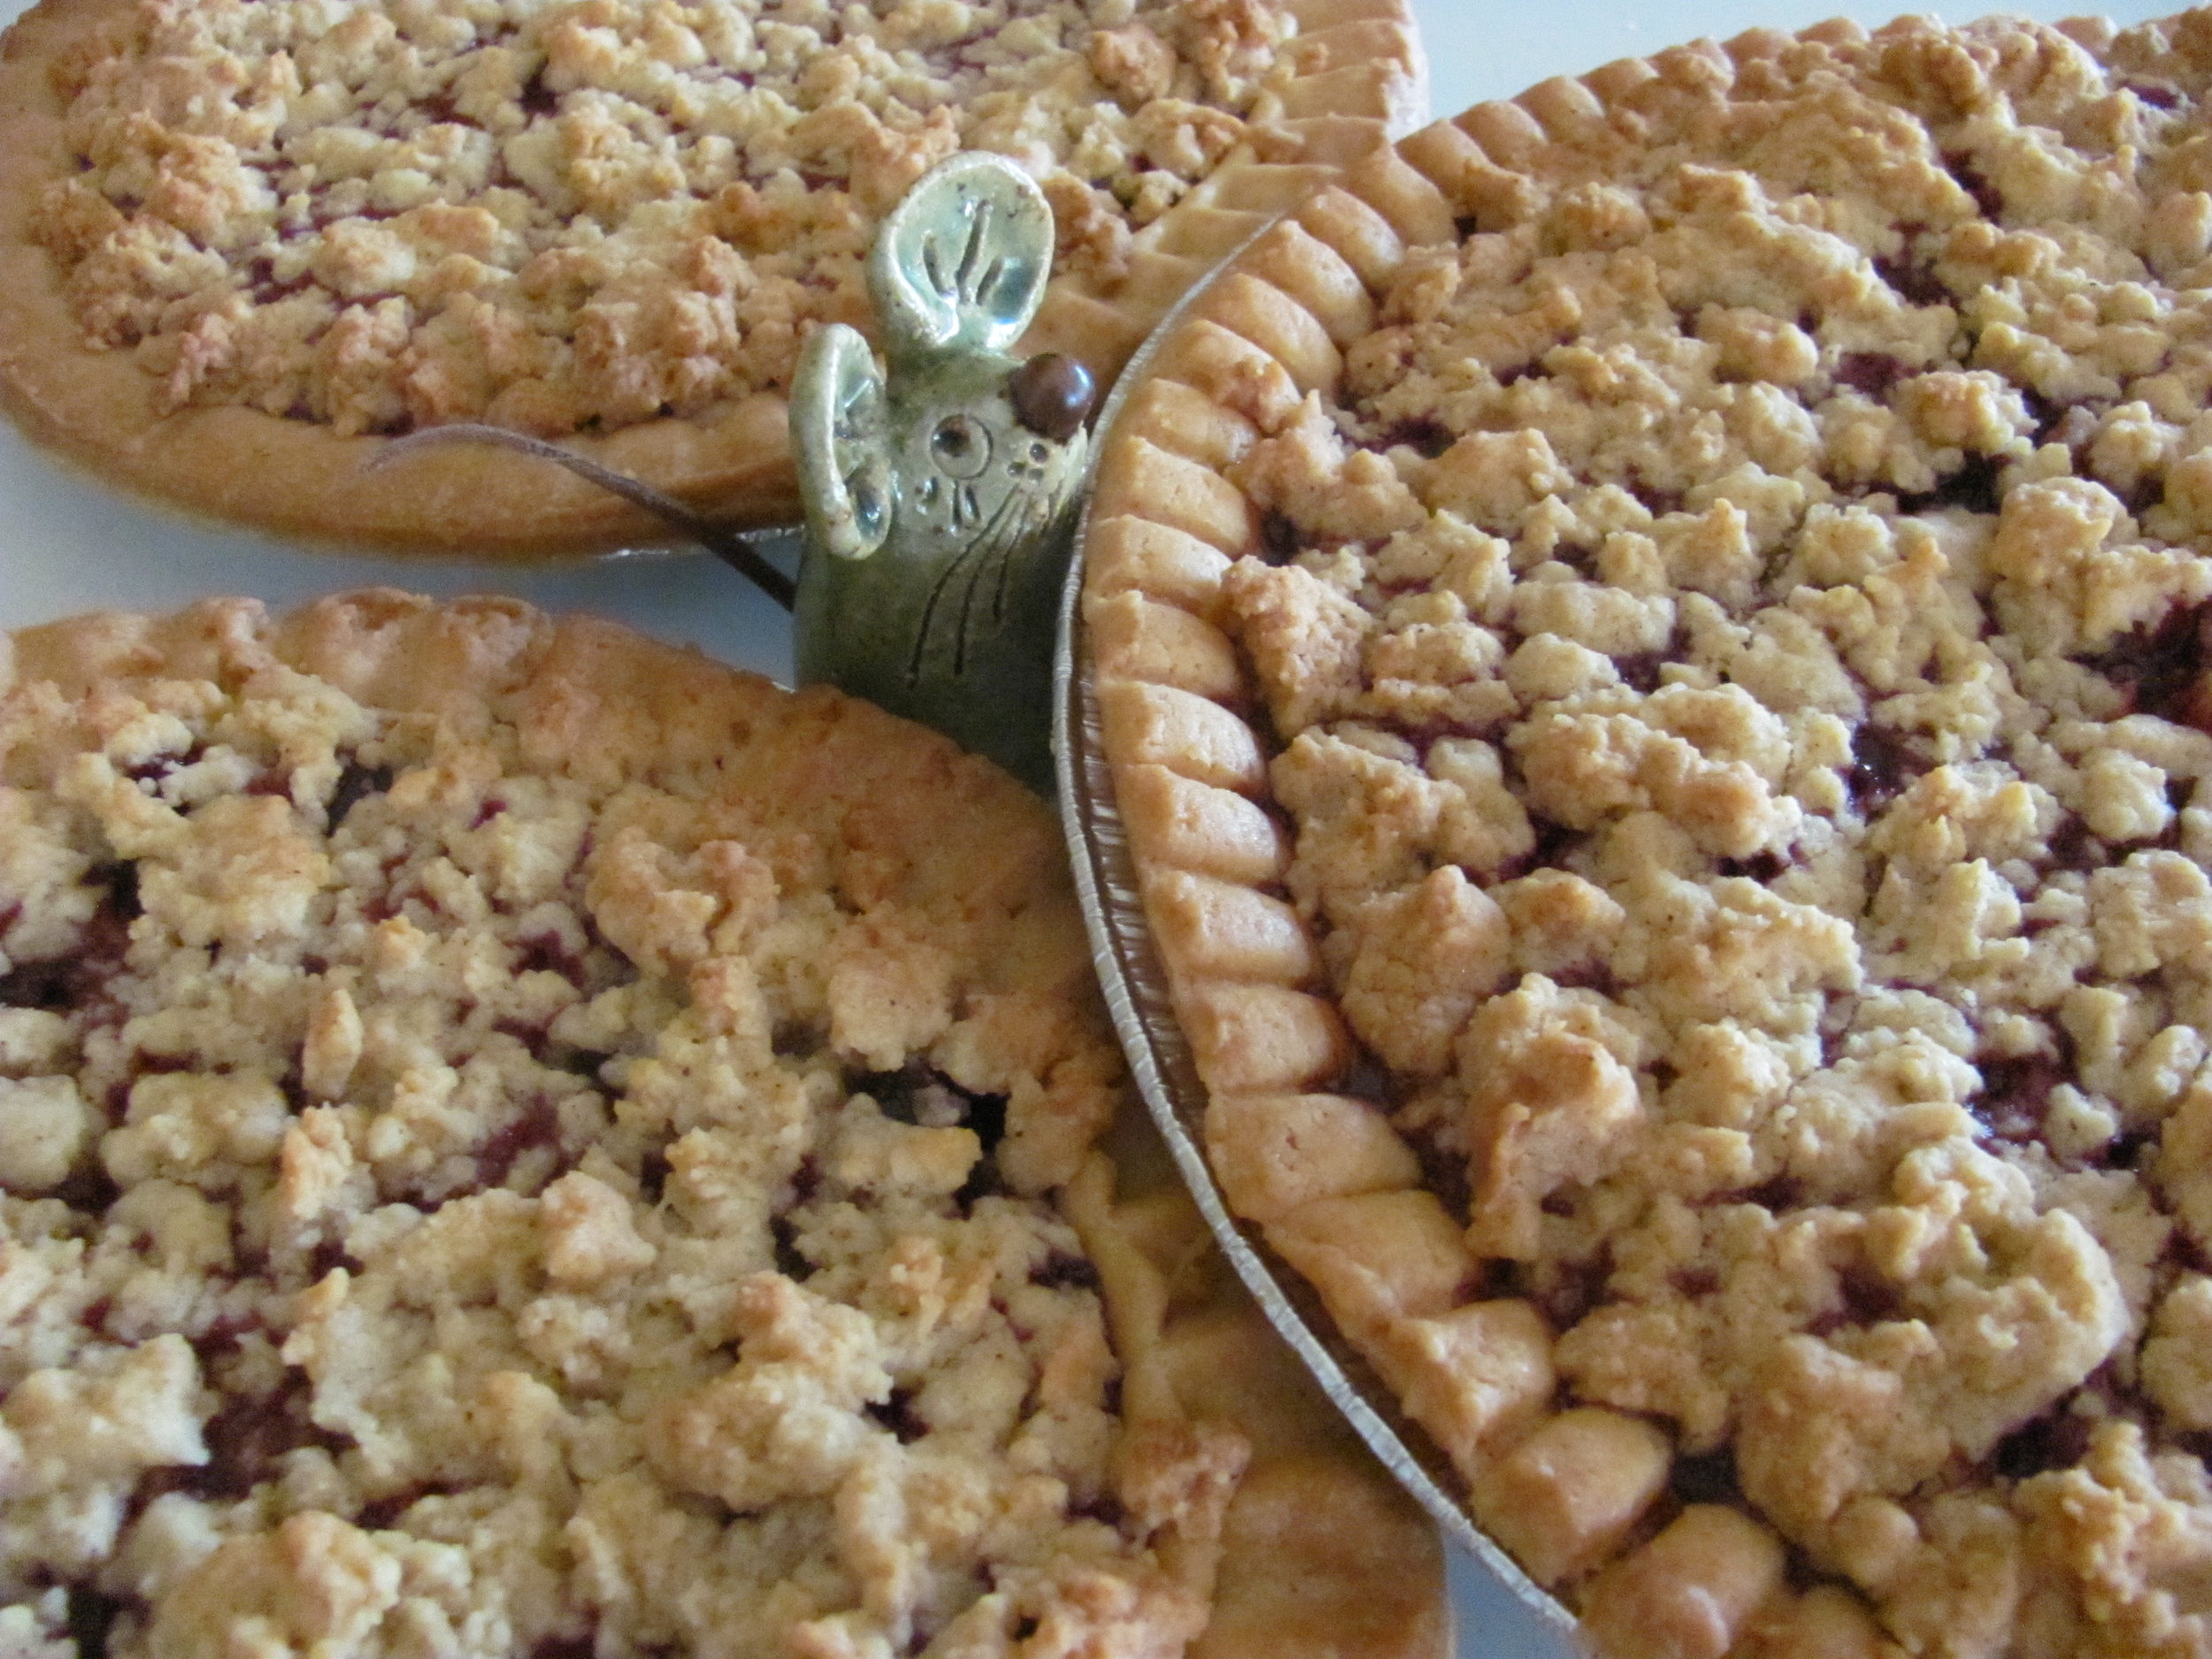 Baked Berry Products